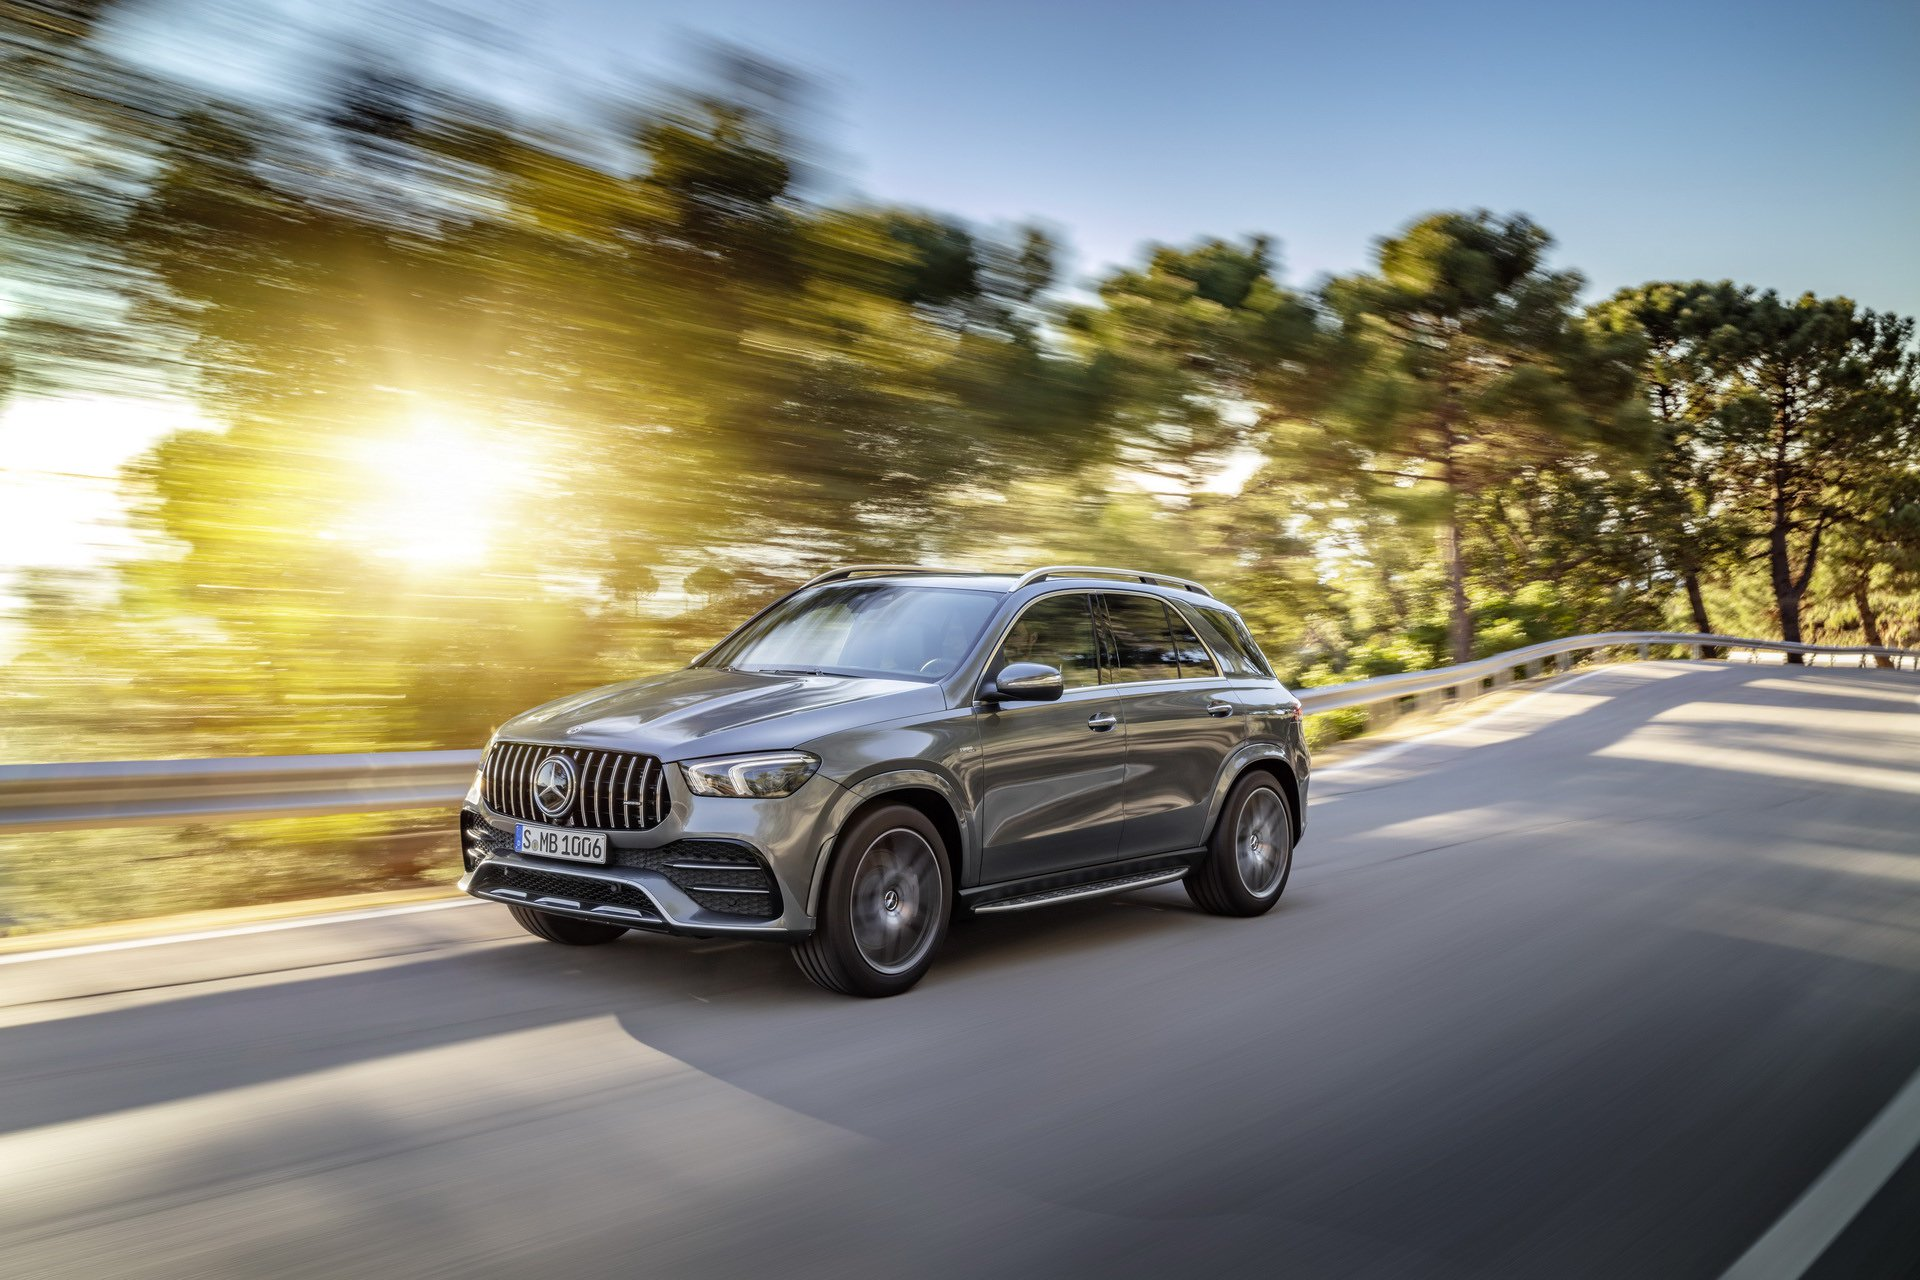 2020 Mercedes-AMG GLE 53 4MATIC+ (Color: Selenite Grey) Front Three-Quarter Wallpapers (7)